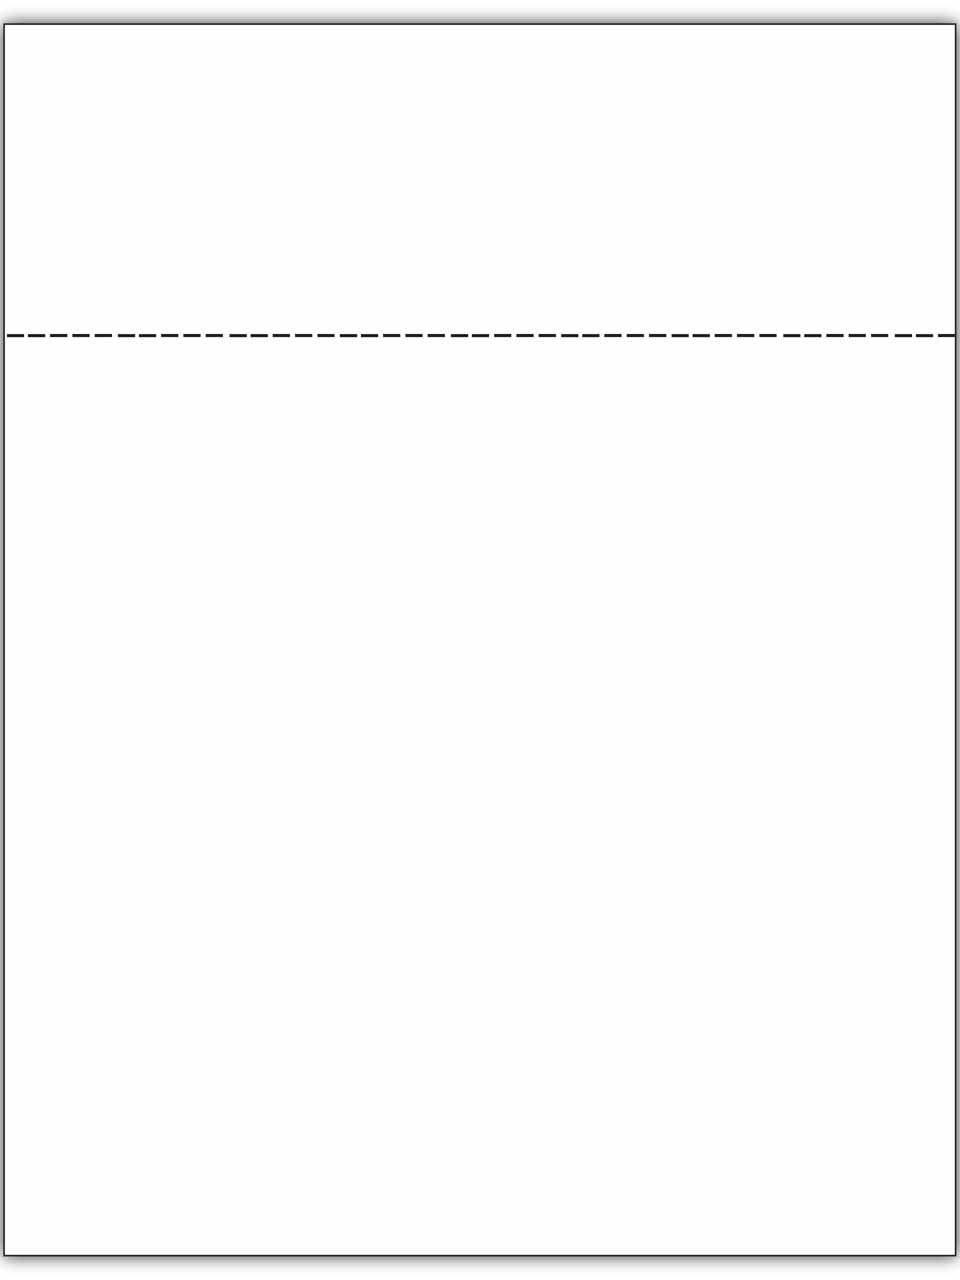 blank statement invoice paper billing invoices and statements perforated paper for invoices